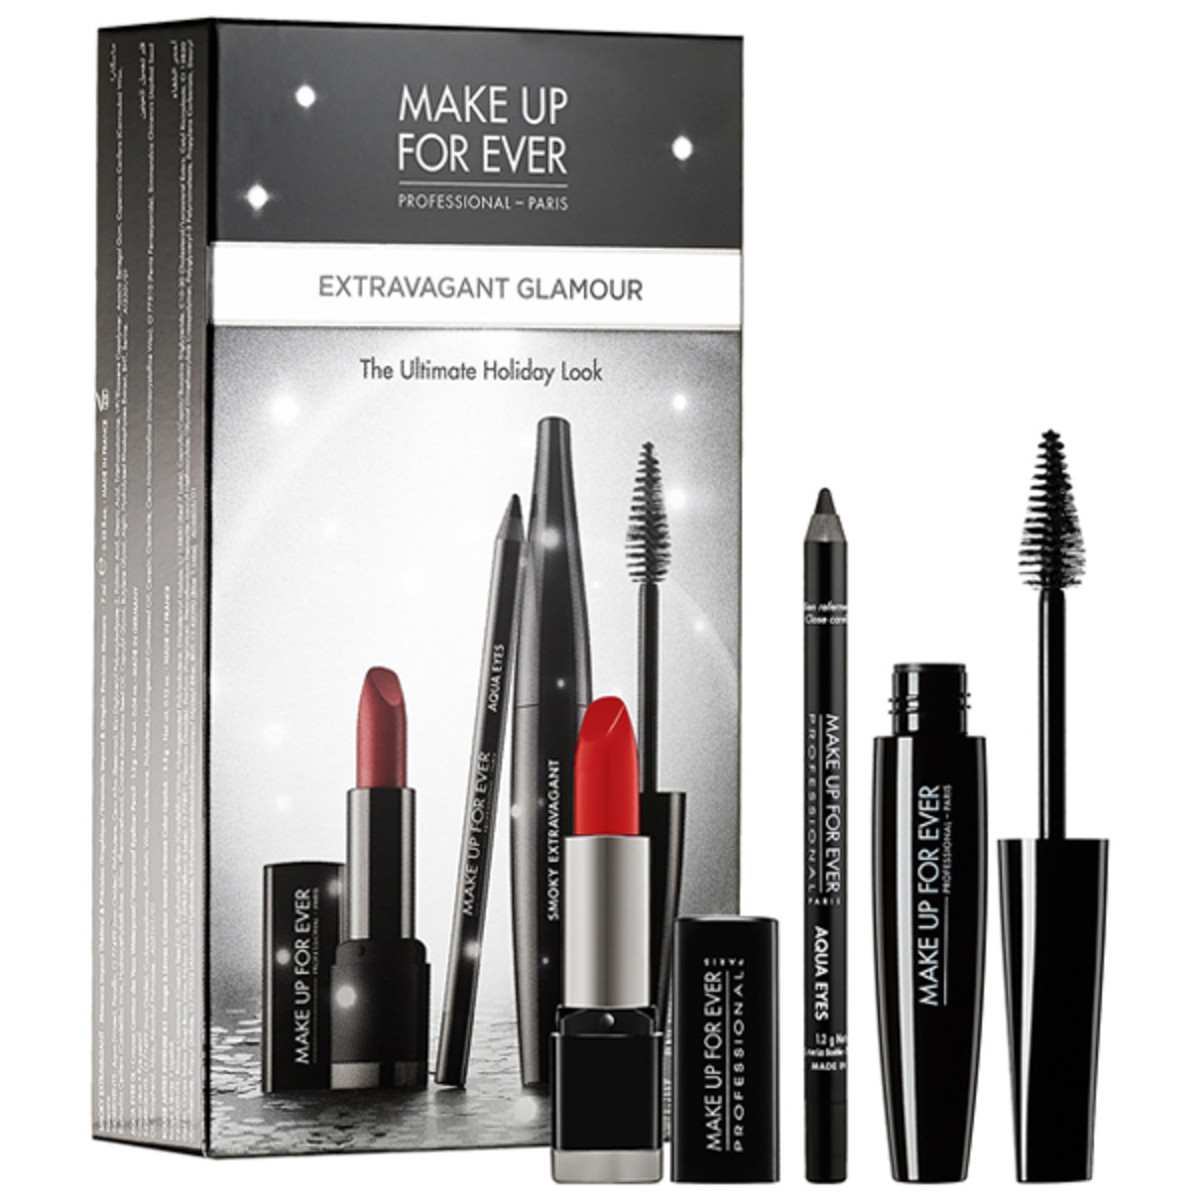 Make Up For Ever Extravagant Glamour Set